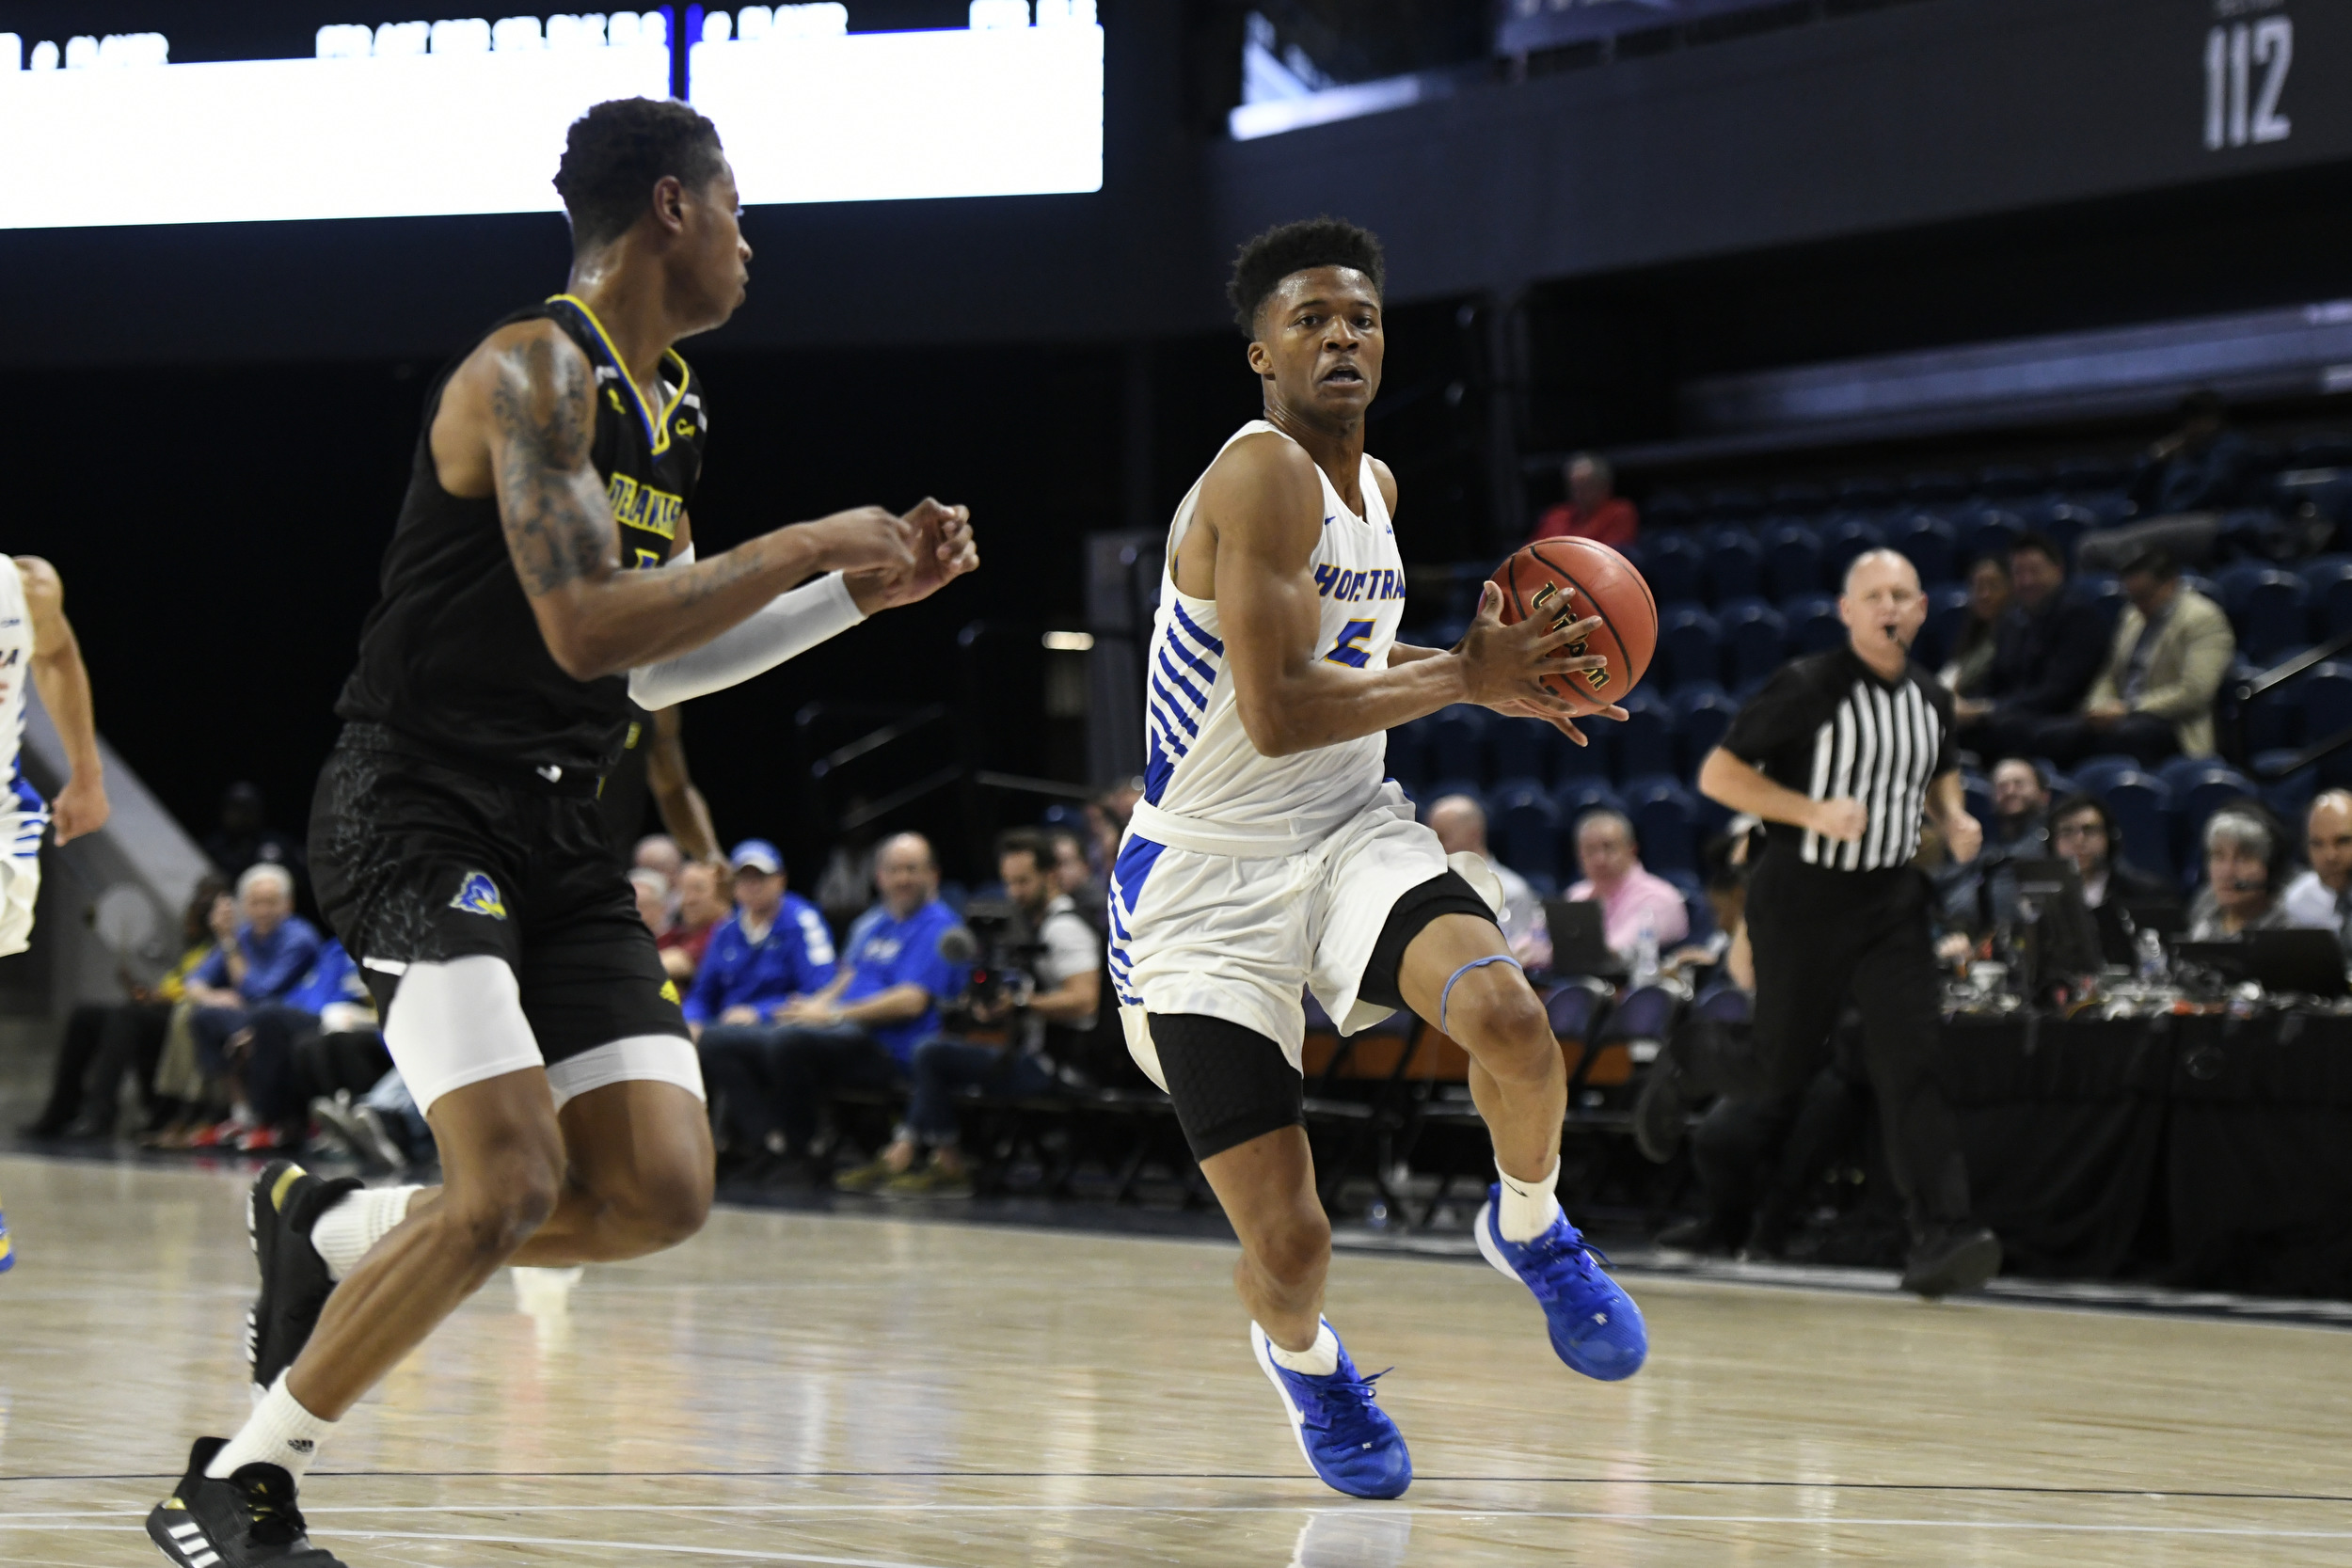 Hofstra guard Eli Pemberton drives against the Delaware defense in the Colonial Athletic Association Men's Basketball Tournament semifinal in Washington. Pemberton led the Pride with 24 points. (Photo: Rafael Suanes/CAA)